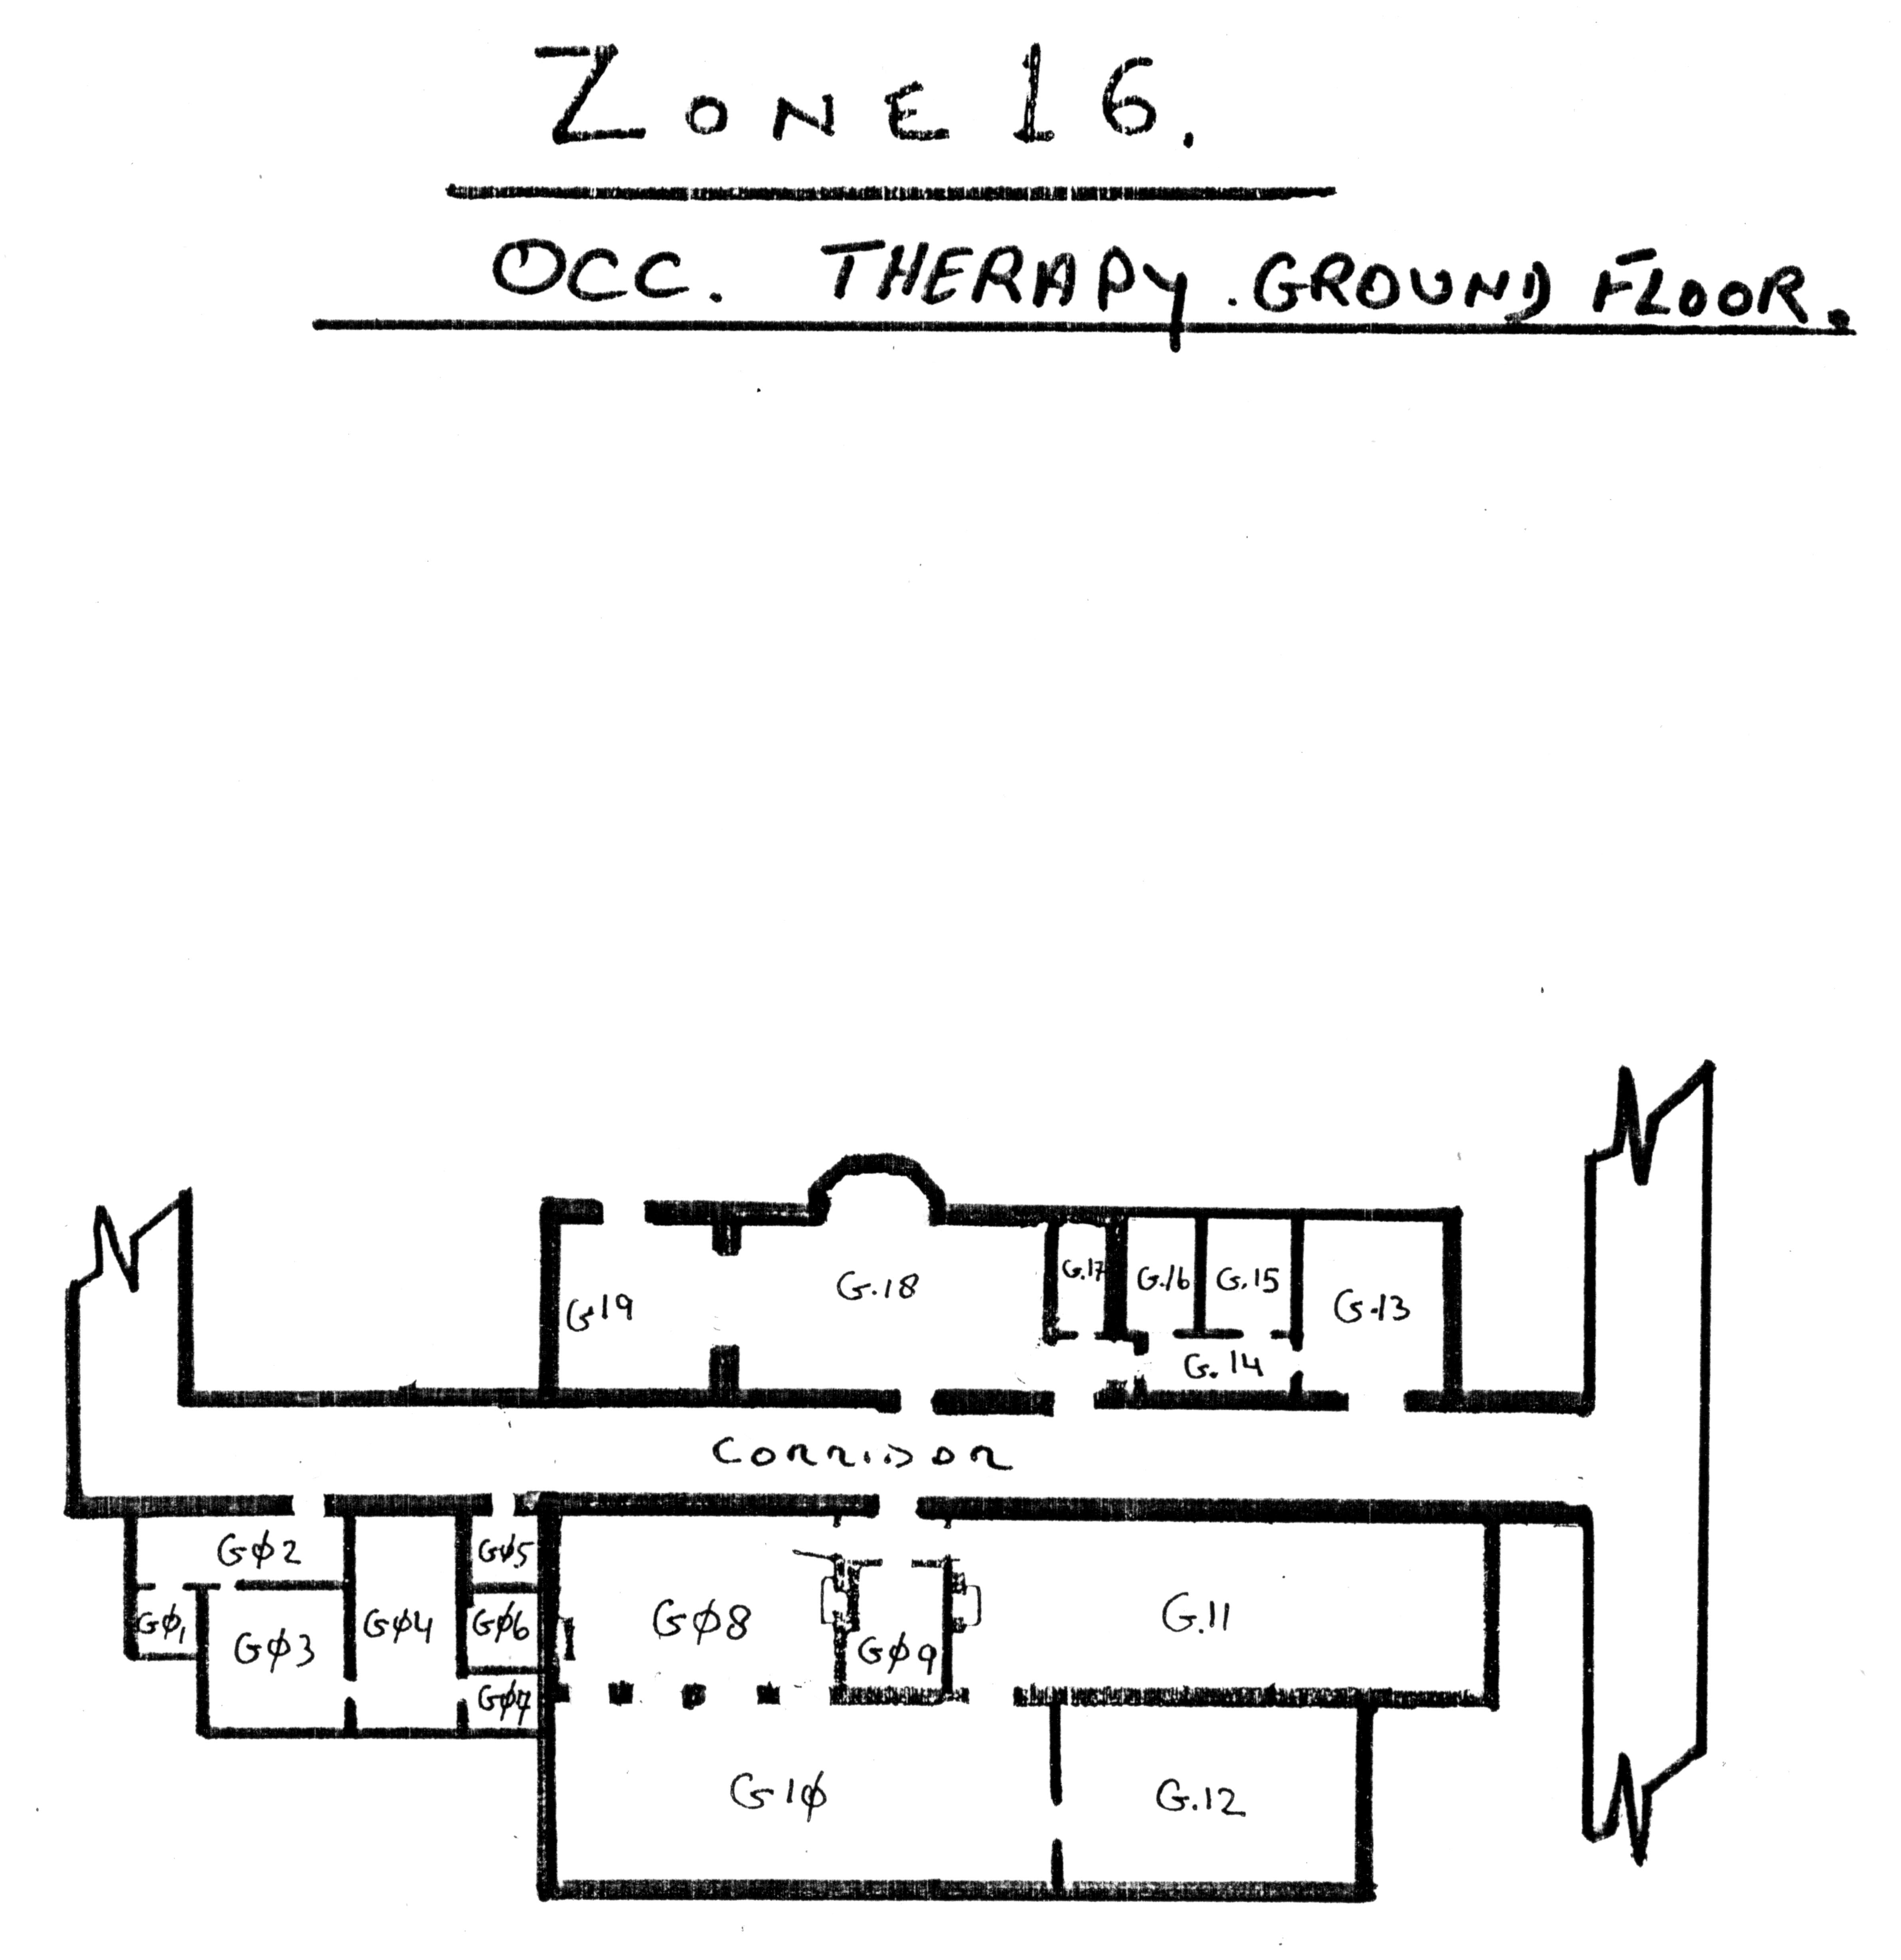 Cane hill Servant quarters floor plans